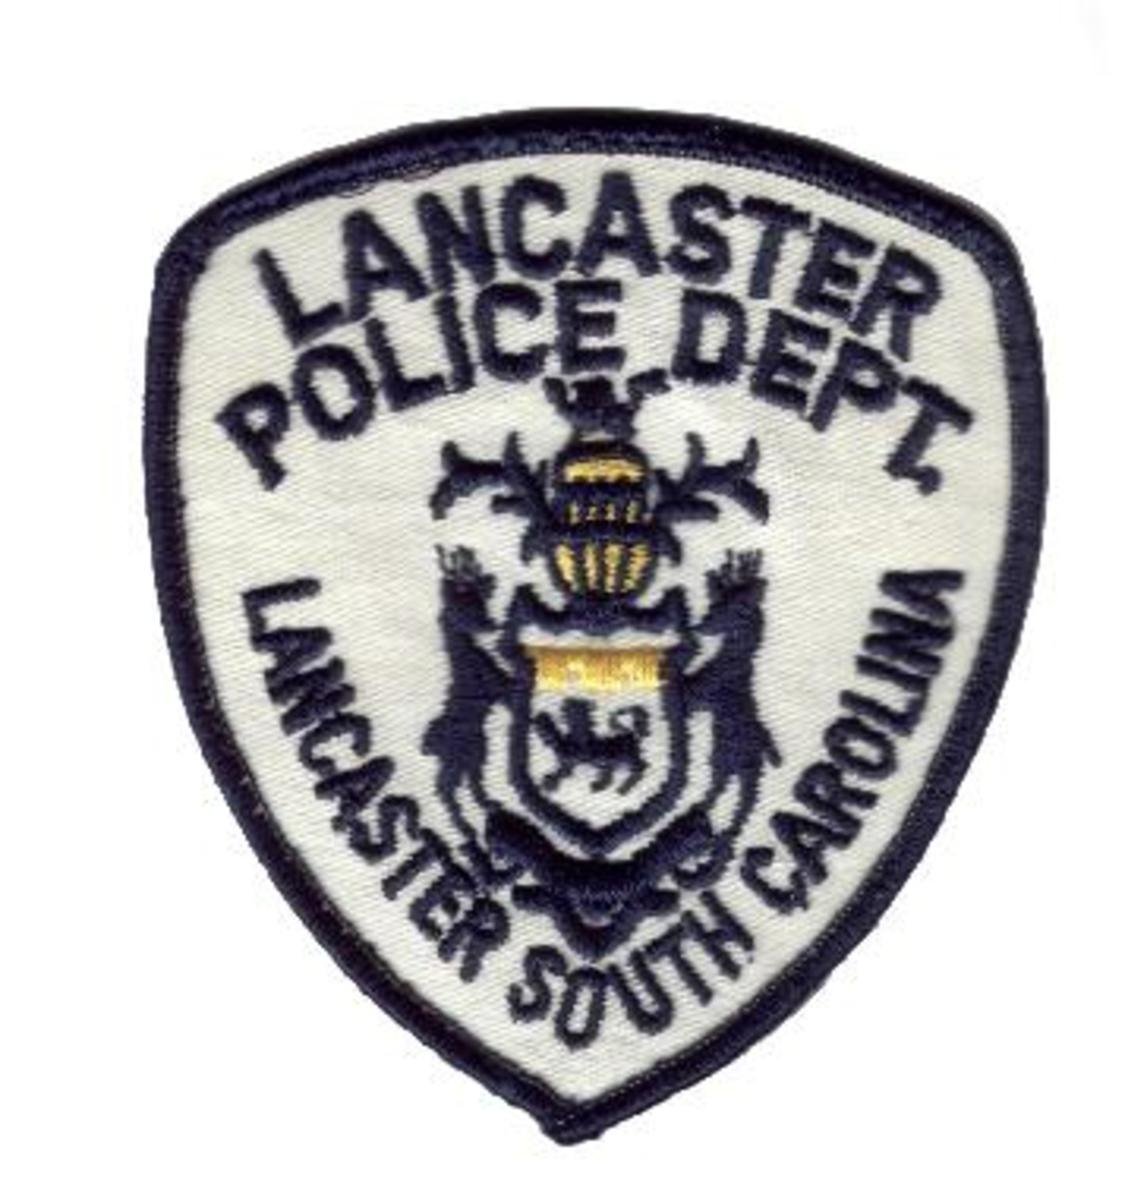 Stories From The Lancaster Police Department, Fun At The LPD